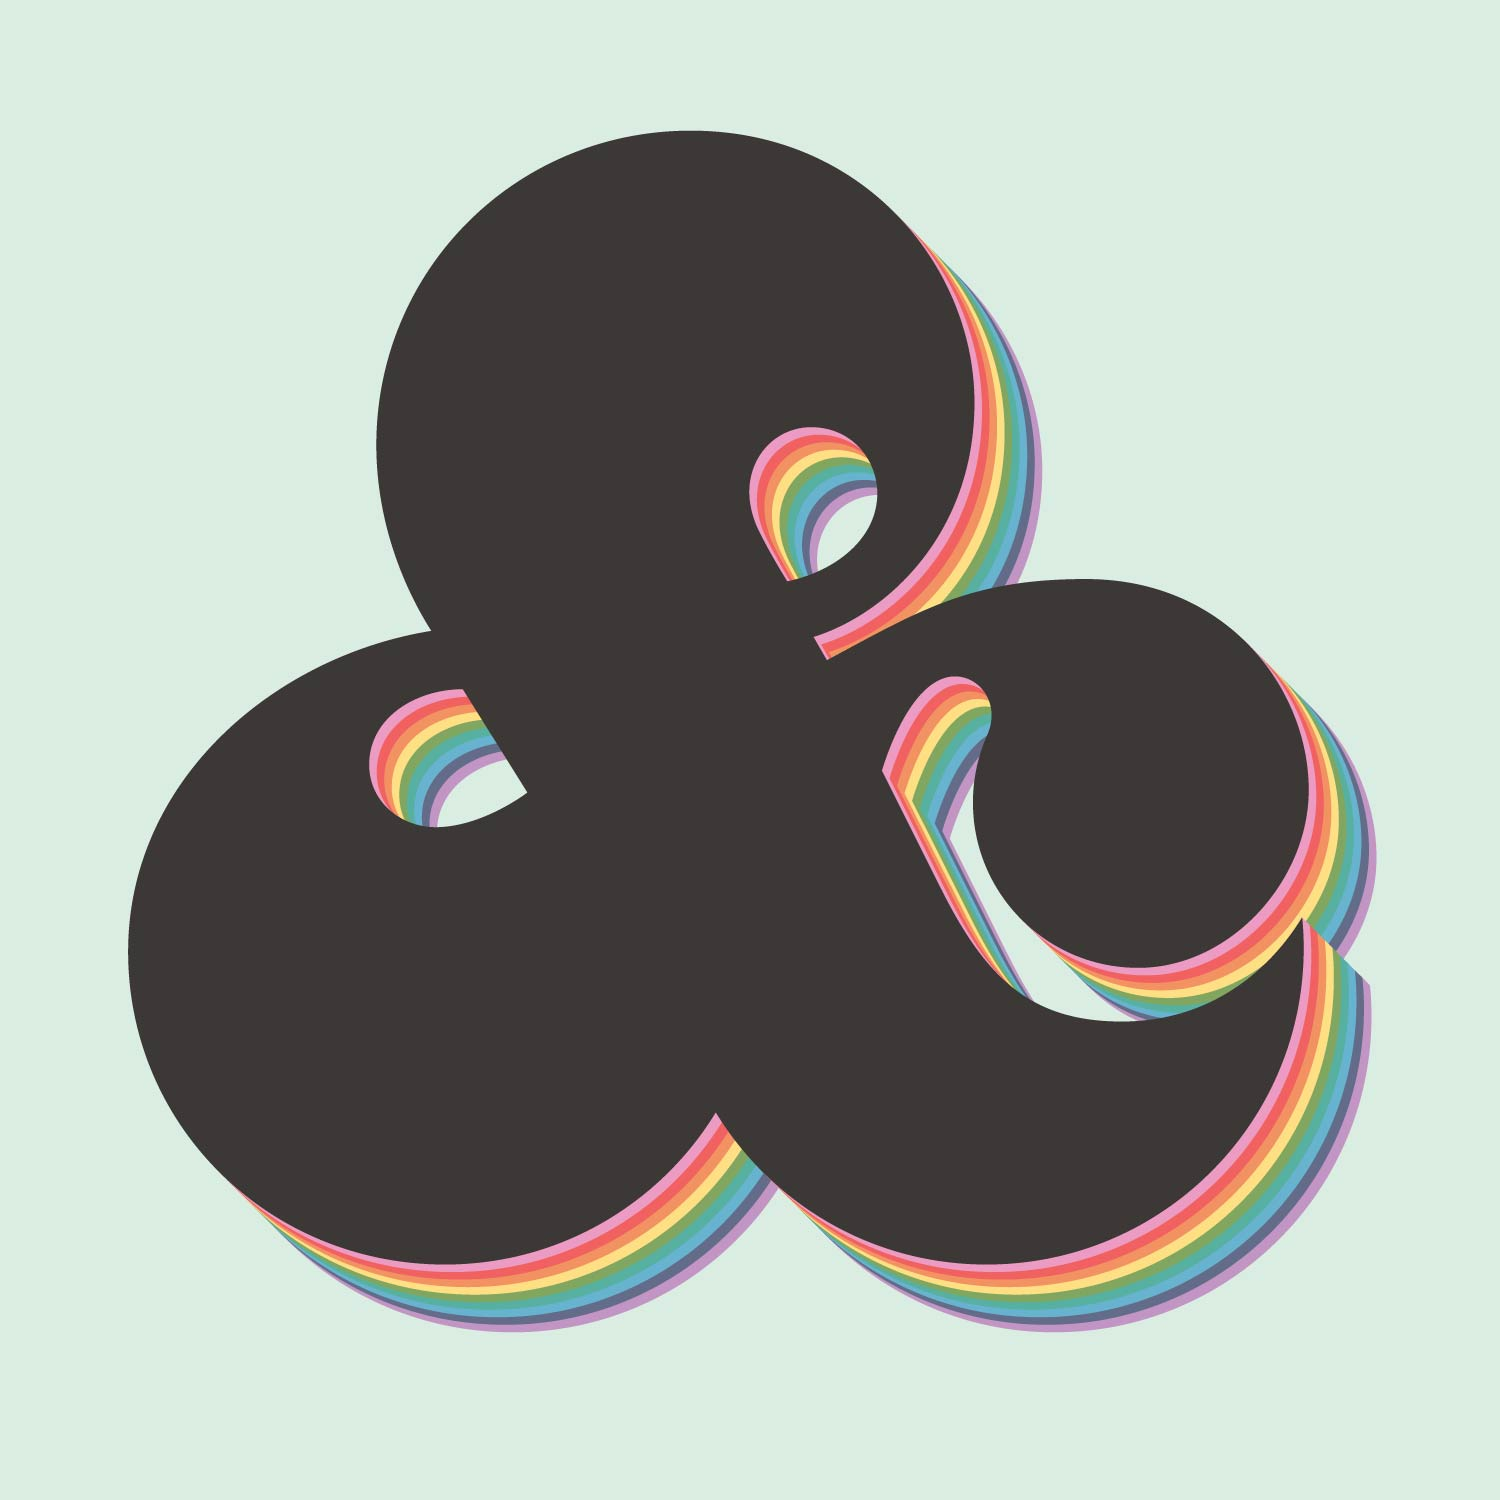 bubbly rounded high contrast ampersand with rainbow extruded body over a soft pastel blue background